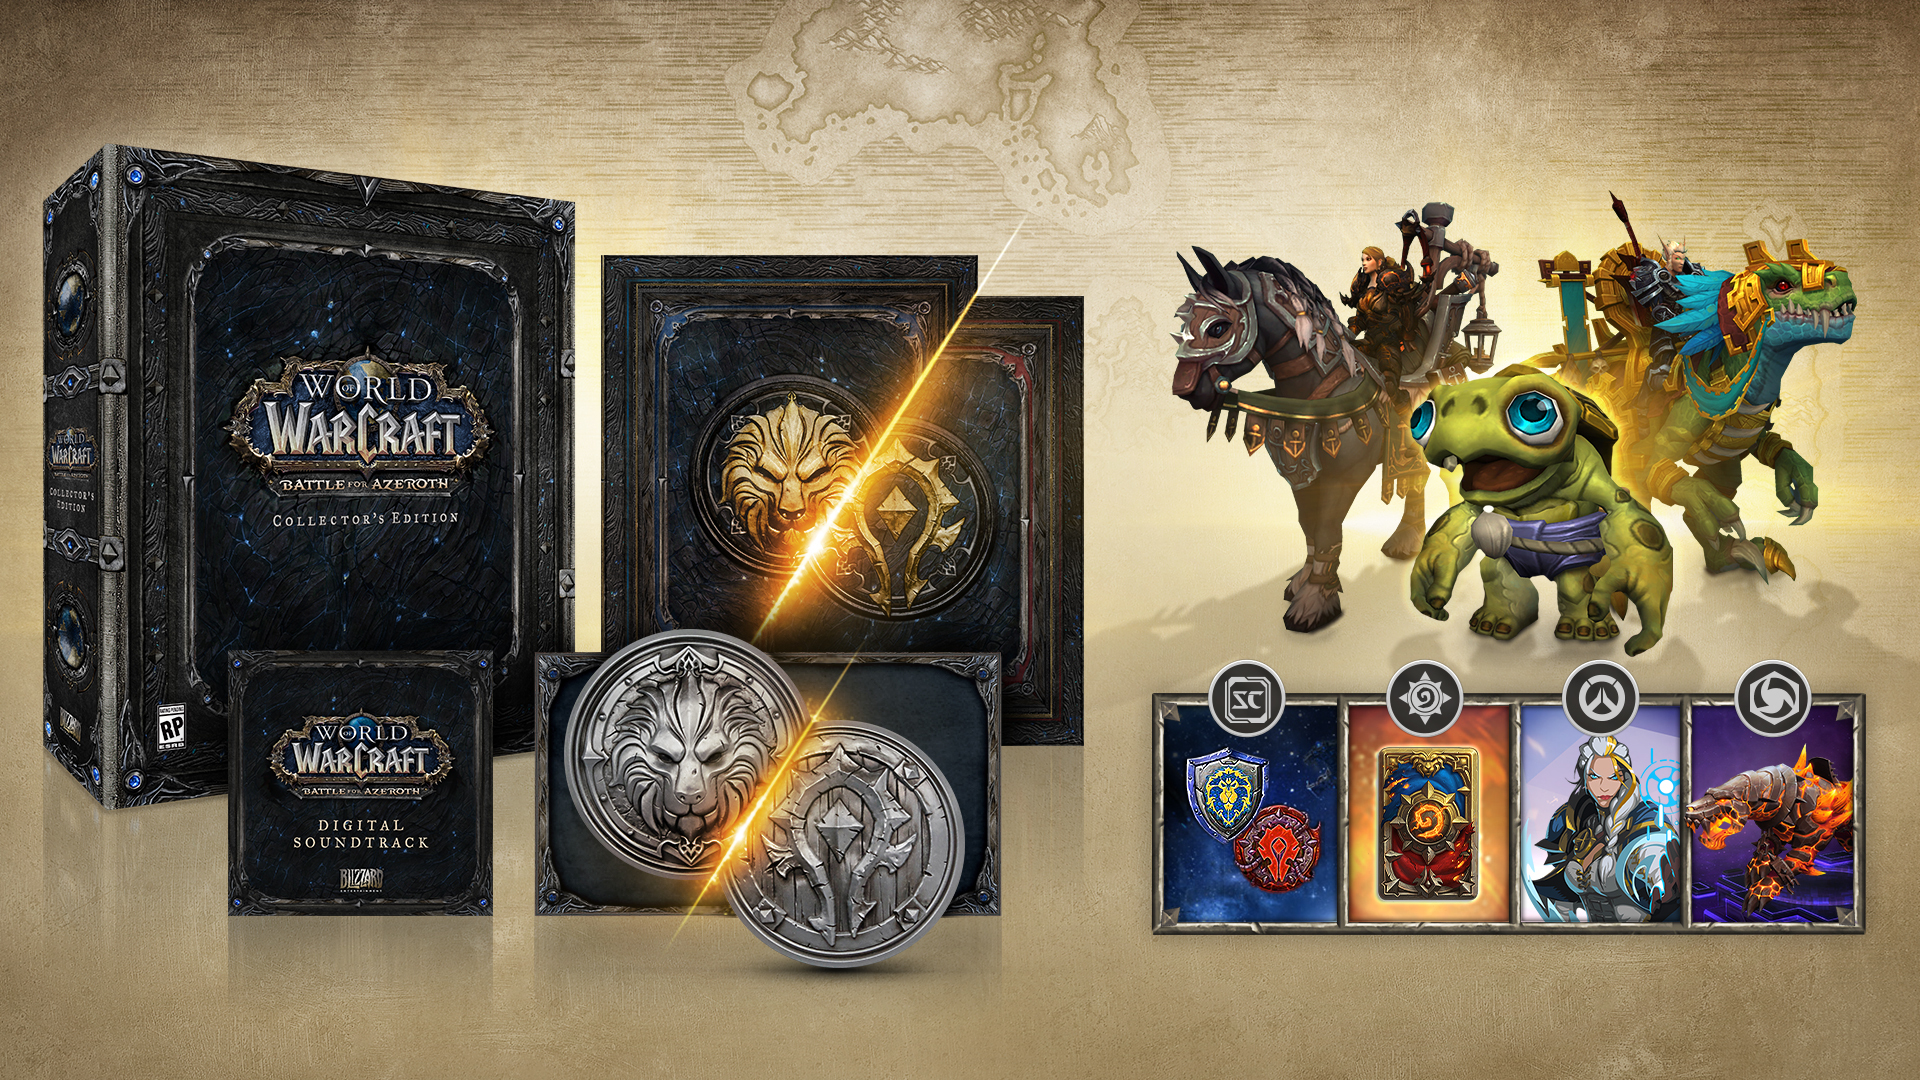 Prepare To Join The Battle For Azeroth New World Of Warcraft